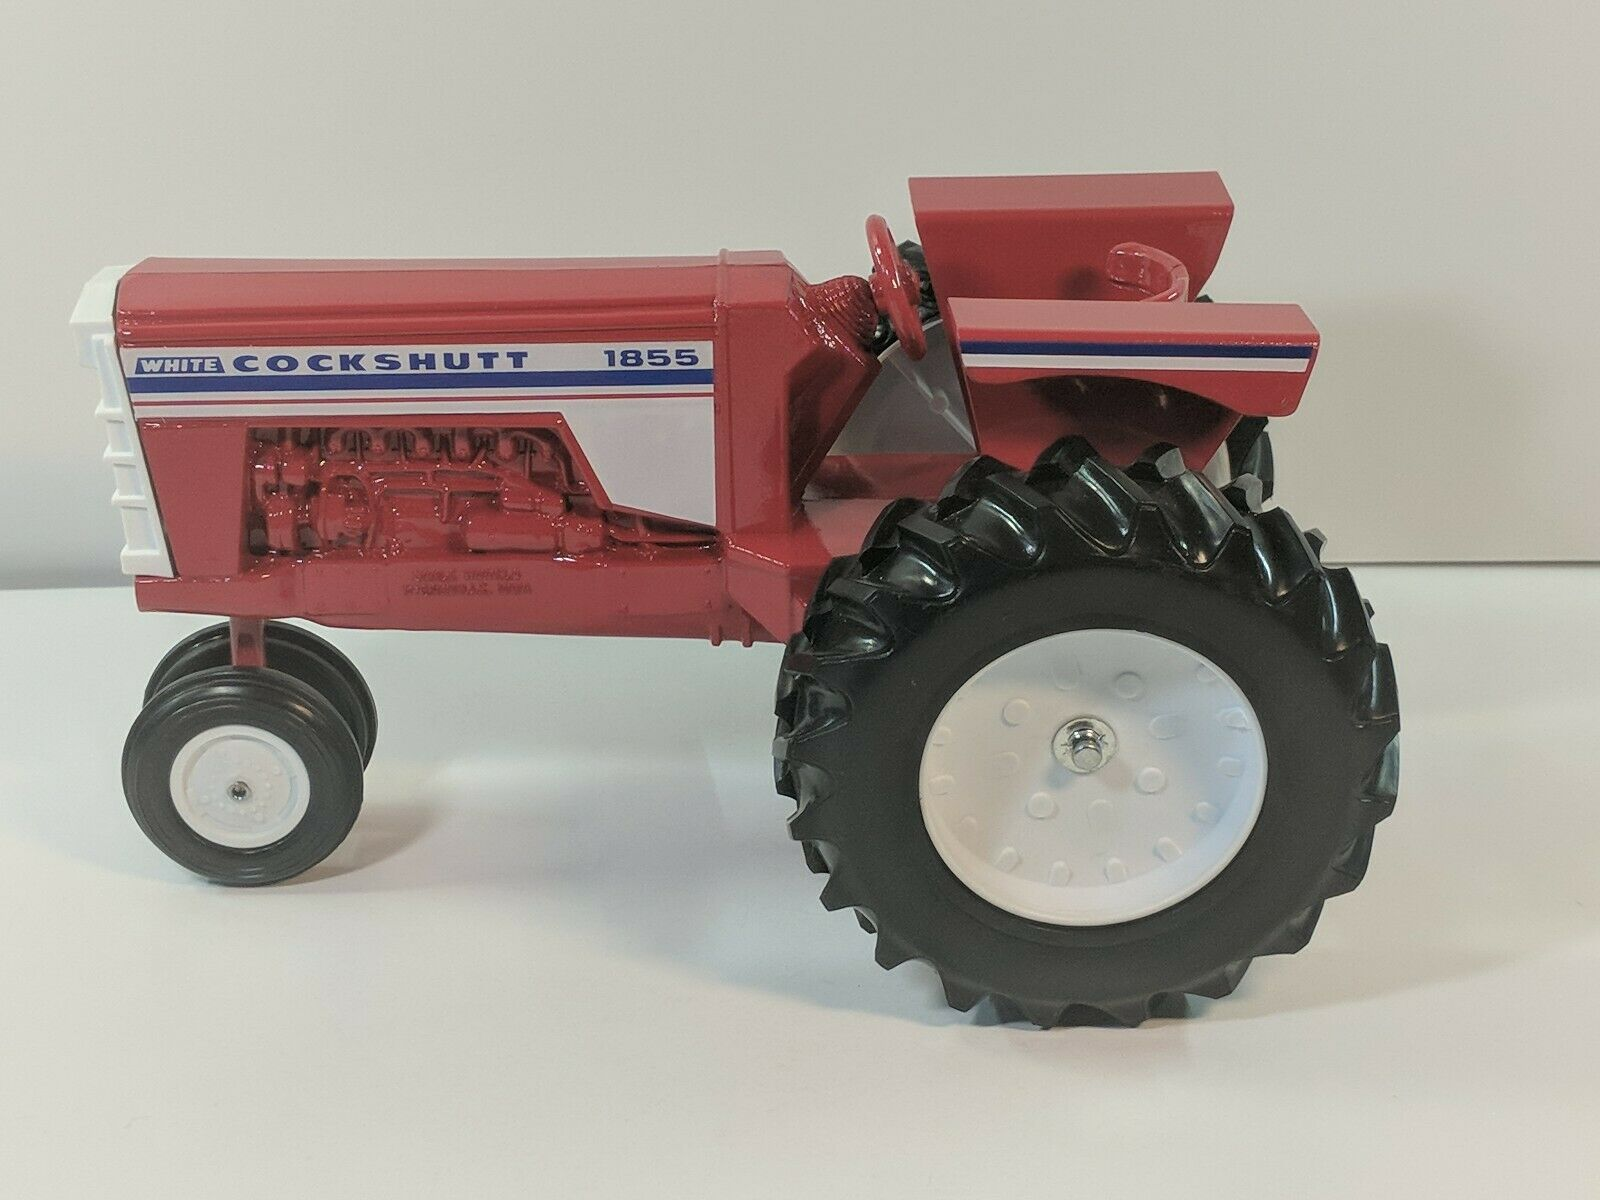 Scale Models Weiß Cockshutt 1855 Tractor Diecast 1 16 Scale - No Box